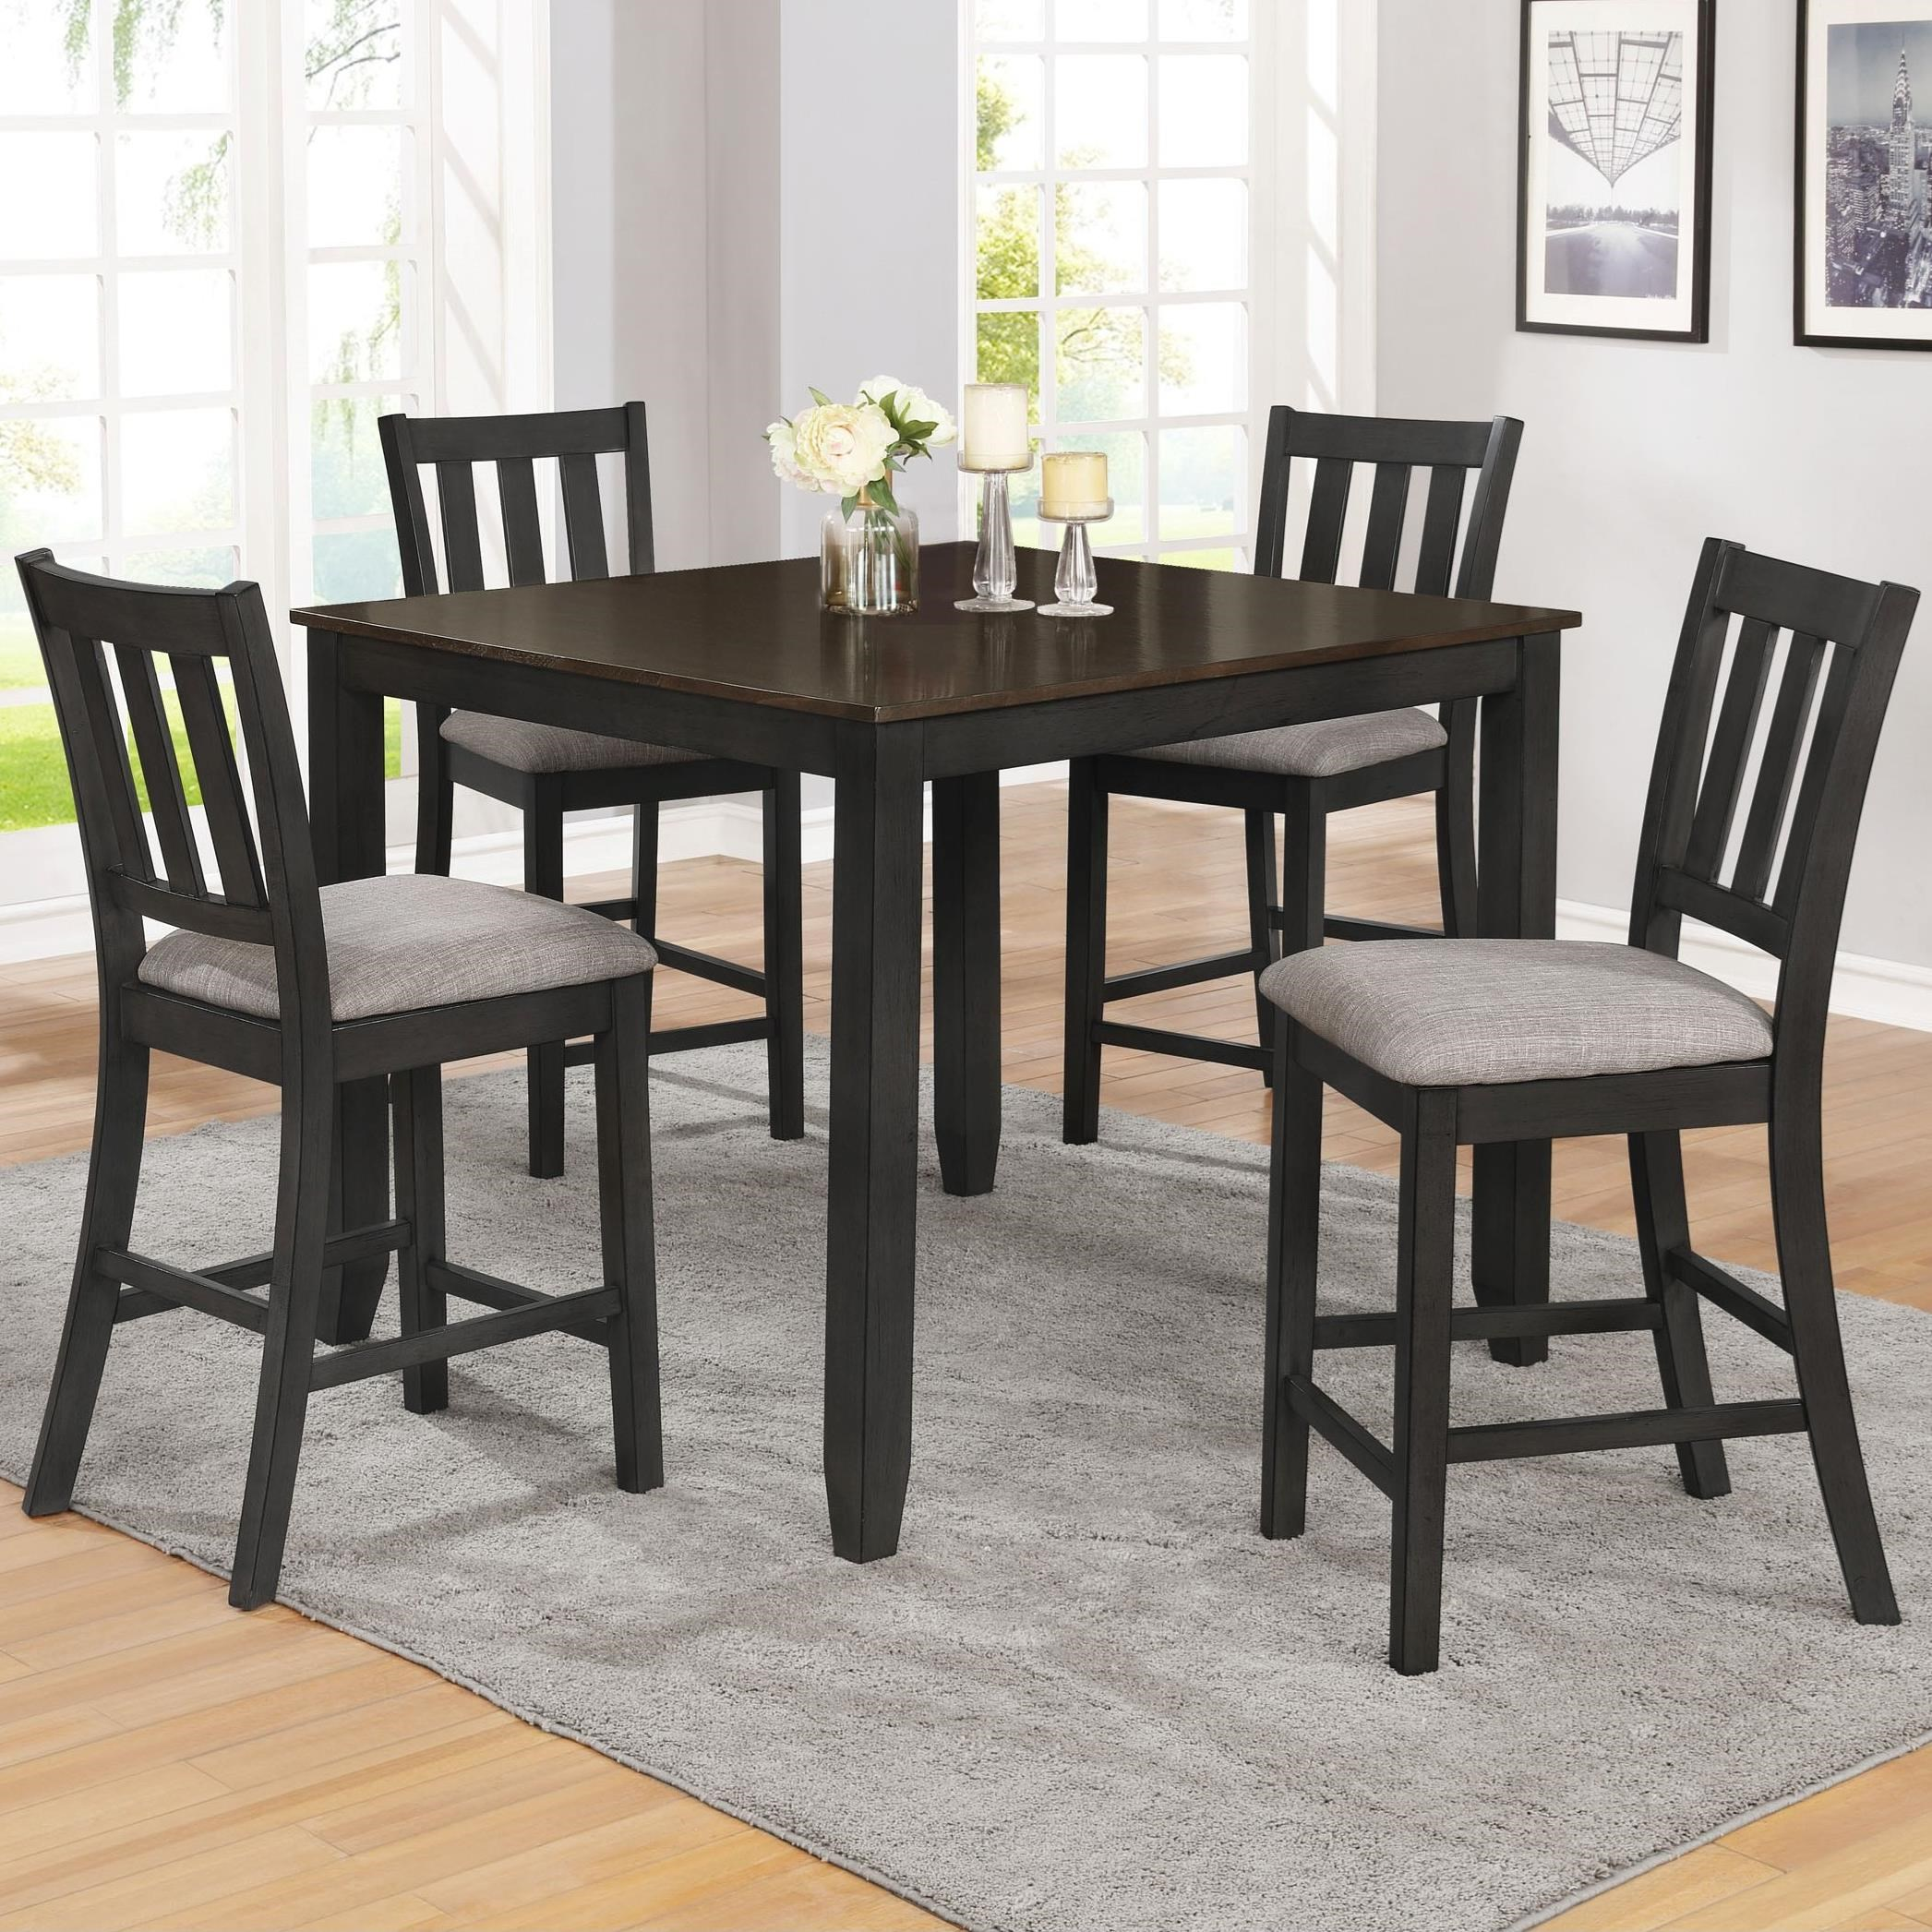 5-Pk Counter Height Table